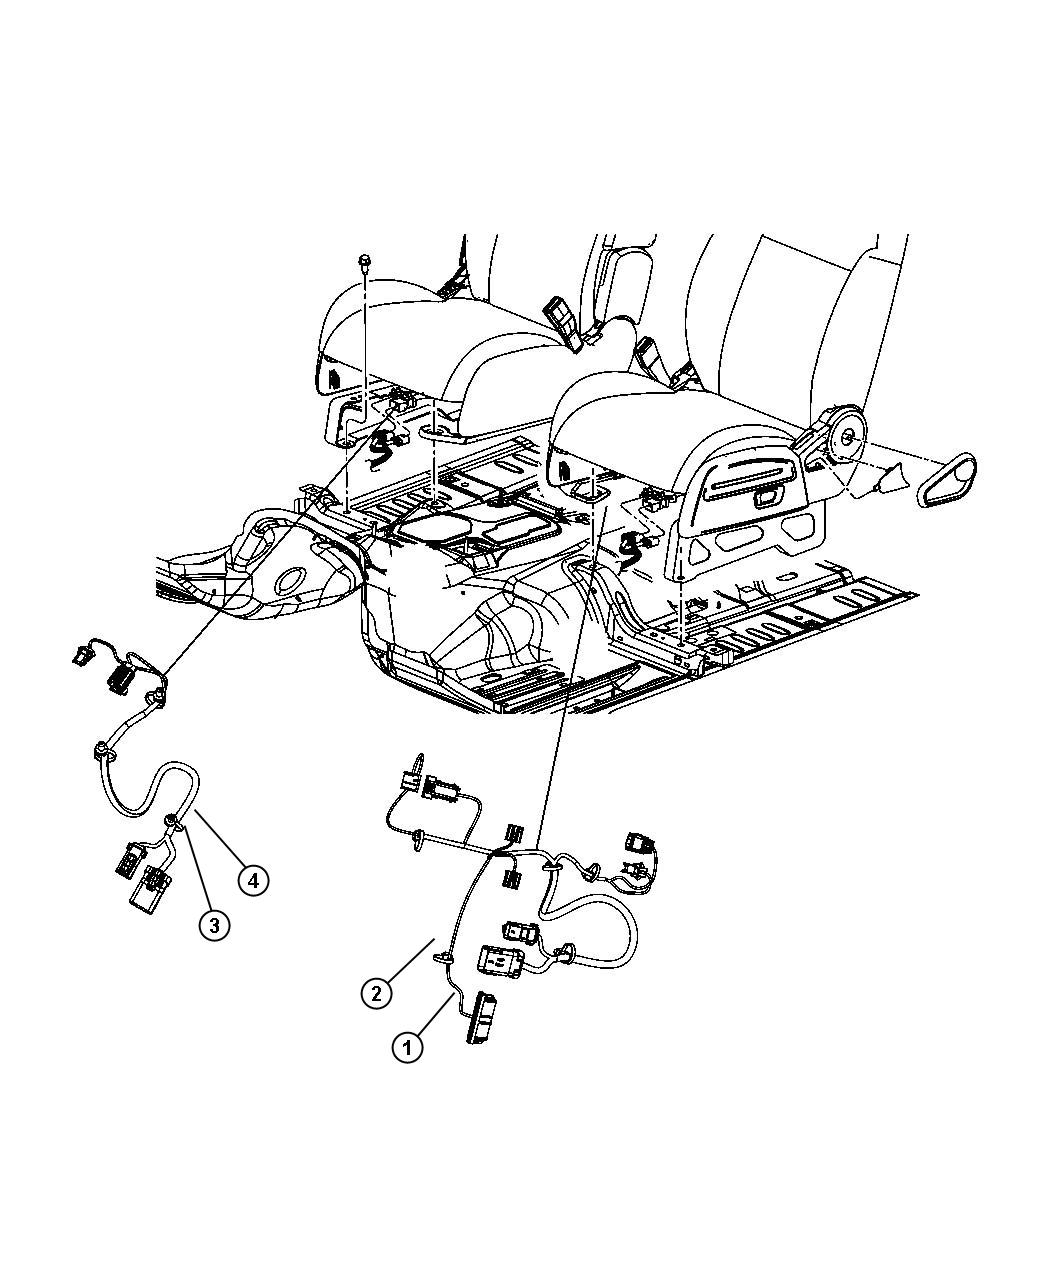 Heated Seat Wiring Diagram Jeep Liberty. Seat. Auto Wiring